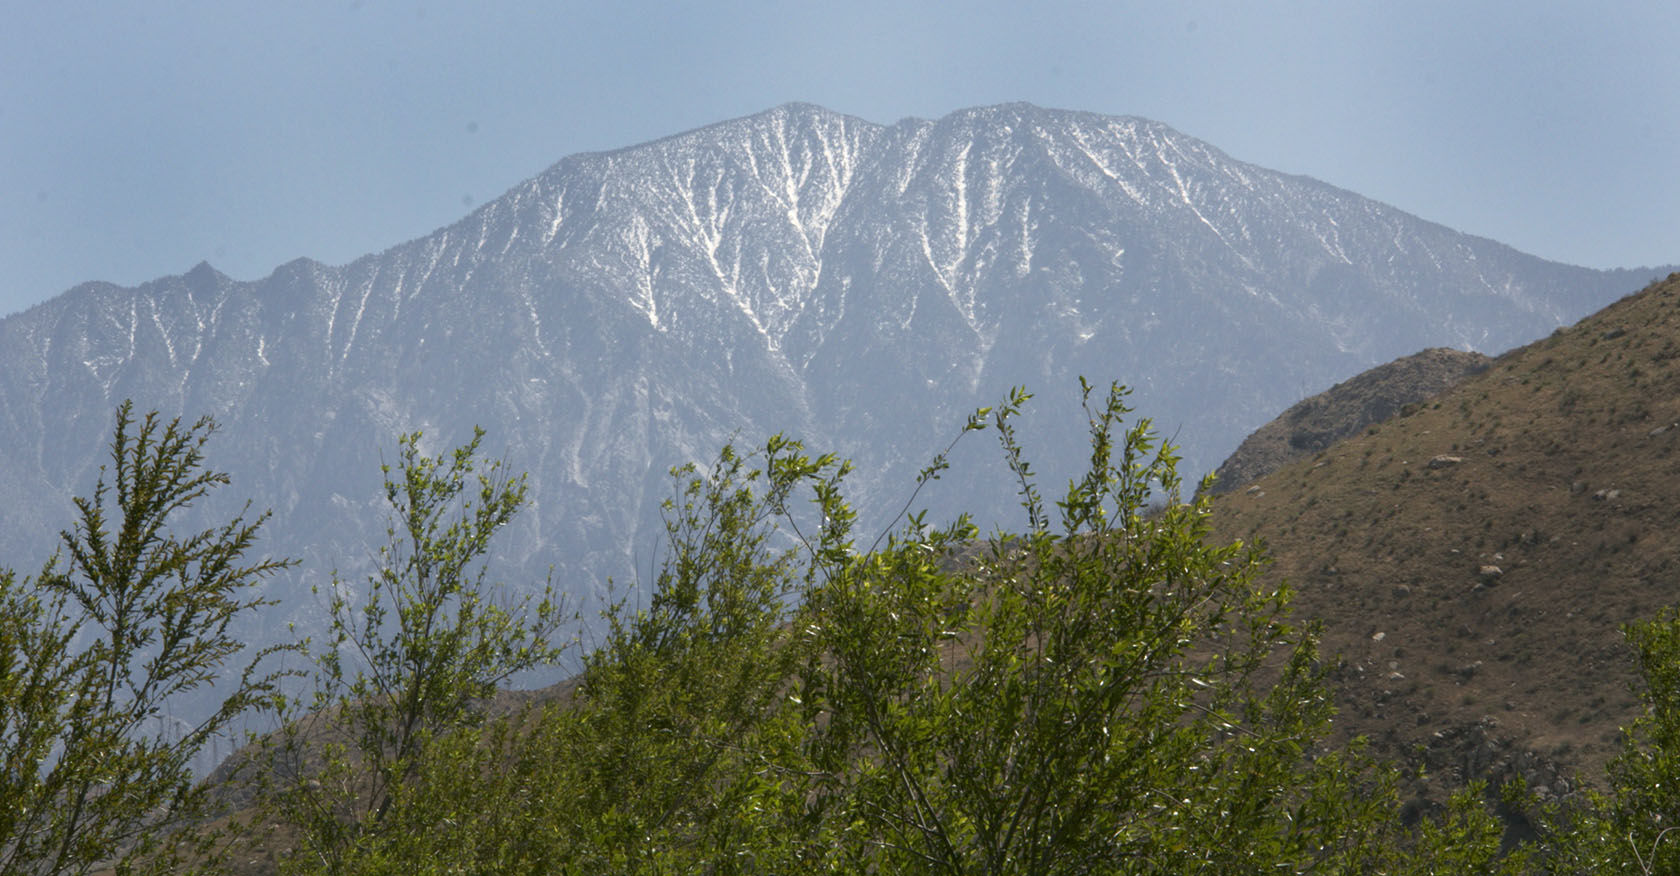 Mt San Jacinto #DesertTour Things to do in Palm Springs #PalmSprings